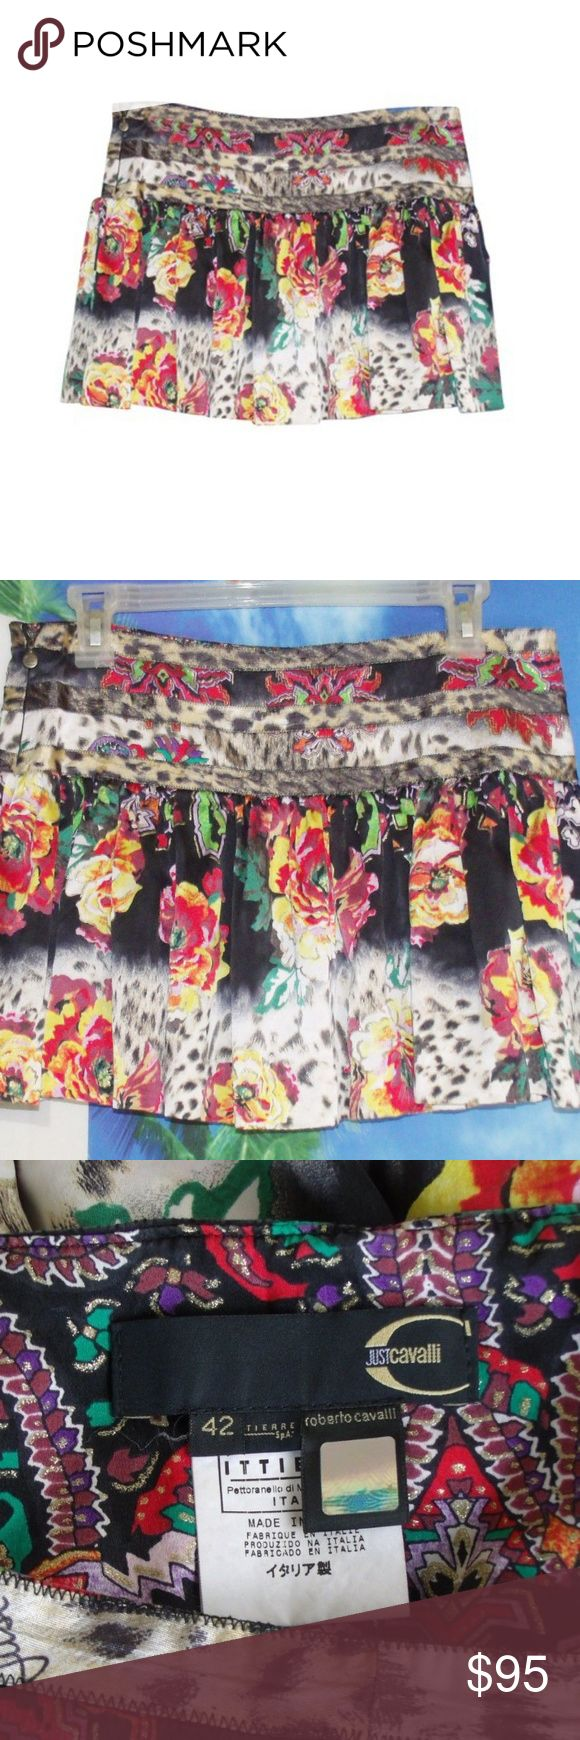 Just Cavalli Floral Ruffle Motif Mini Skirt Just Cavalli pleated skirt   Size 42 = 8 US.   Made from 100% silk.  Pristine condition. No flaws.  Waist: 32 inches Hip: 38 inches Length: 13.5 inches Just Cavalli Skirts Mini